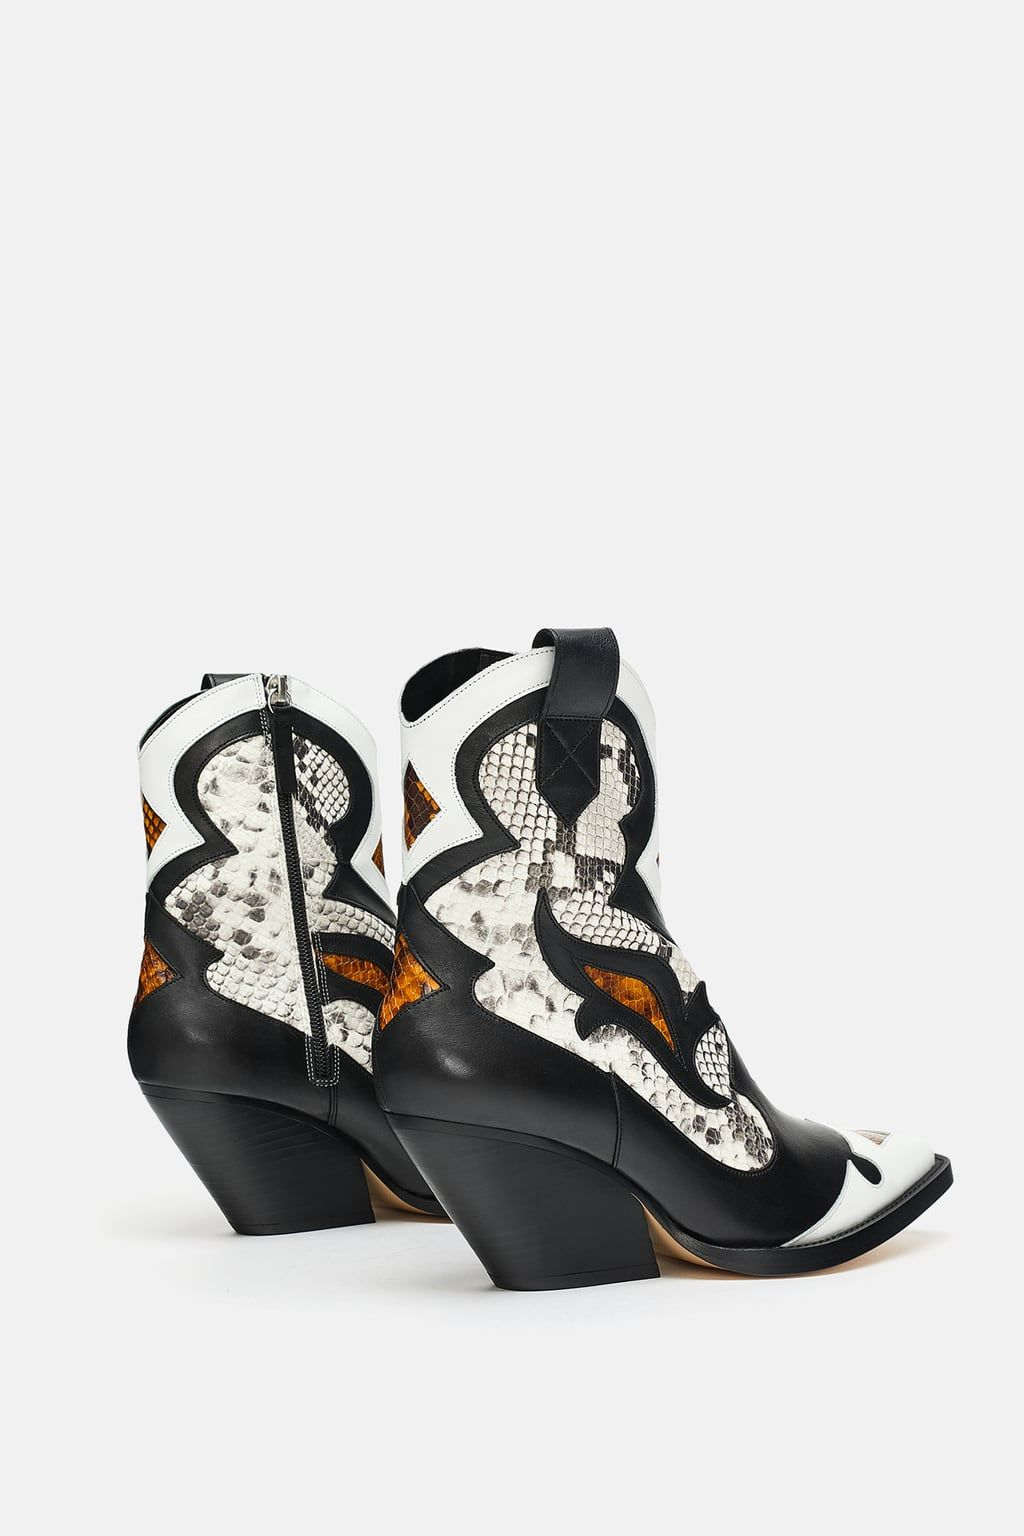 be3d44bd5 Image 5 of SNAKESKIN PRINT LEATHER COWBOY ANKLE BOOTS from Zara ...